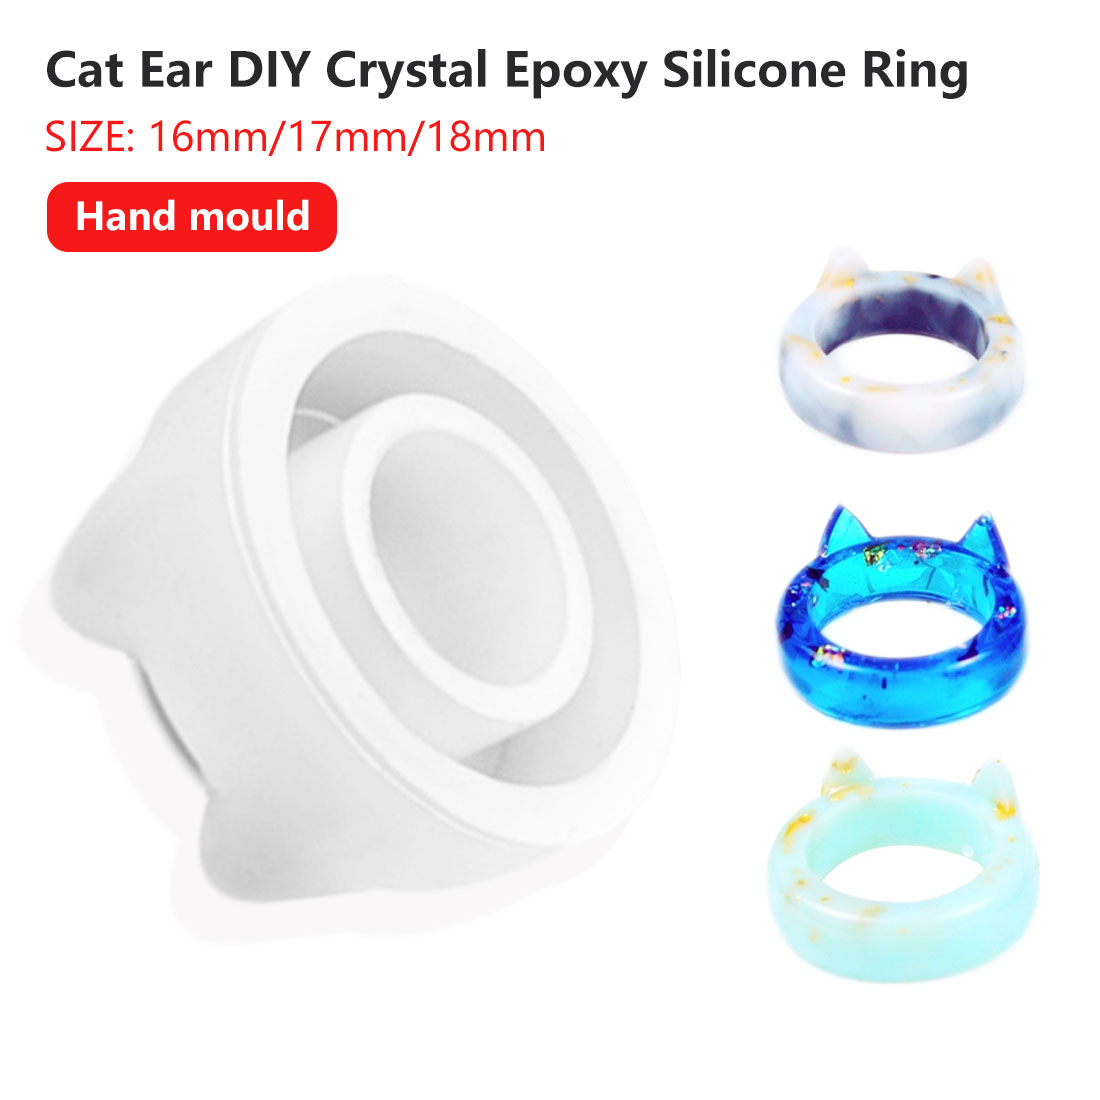 DIY Silicone Mold Dried Flower Jewelry Accessories Tools Equipments Resin Molds 1PC Cat Diamond Flat Shaped Ring Pendant